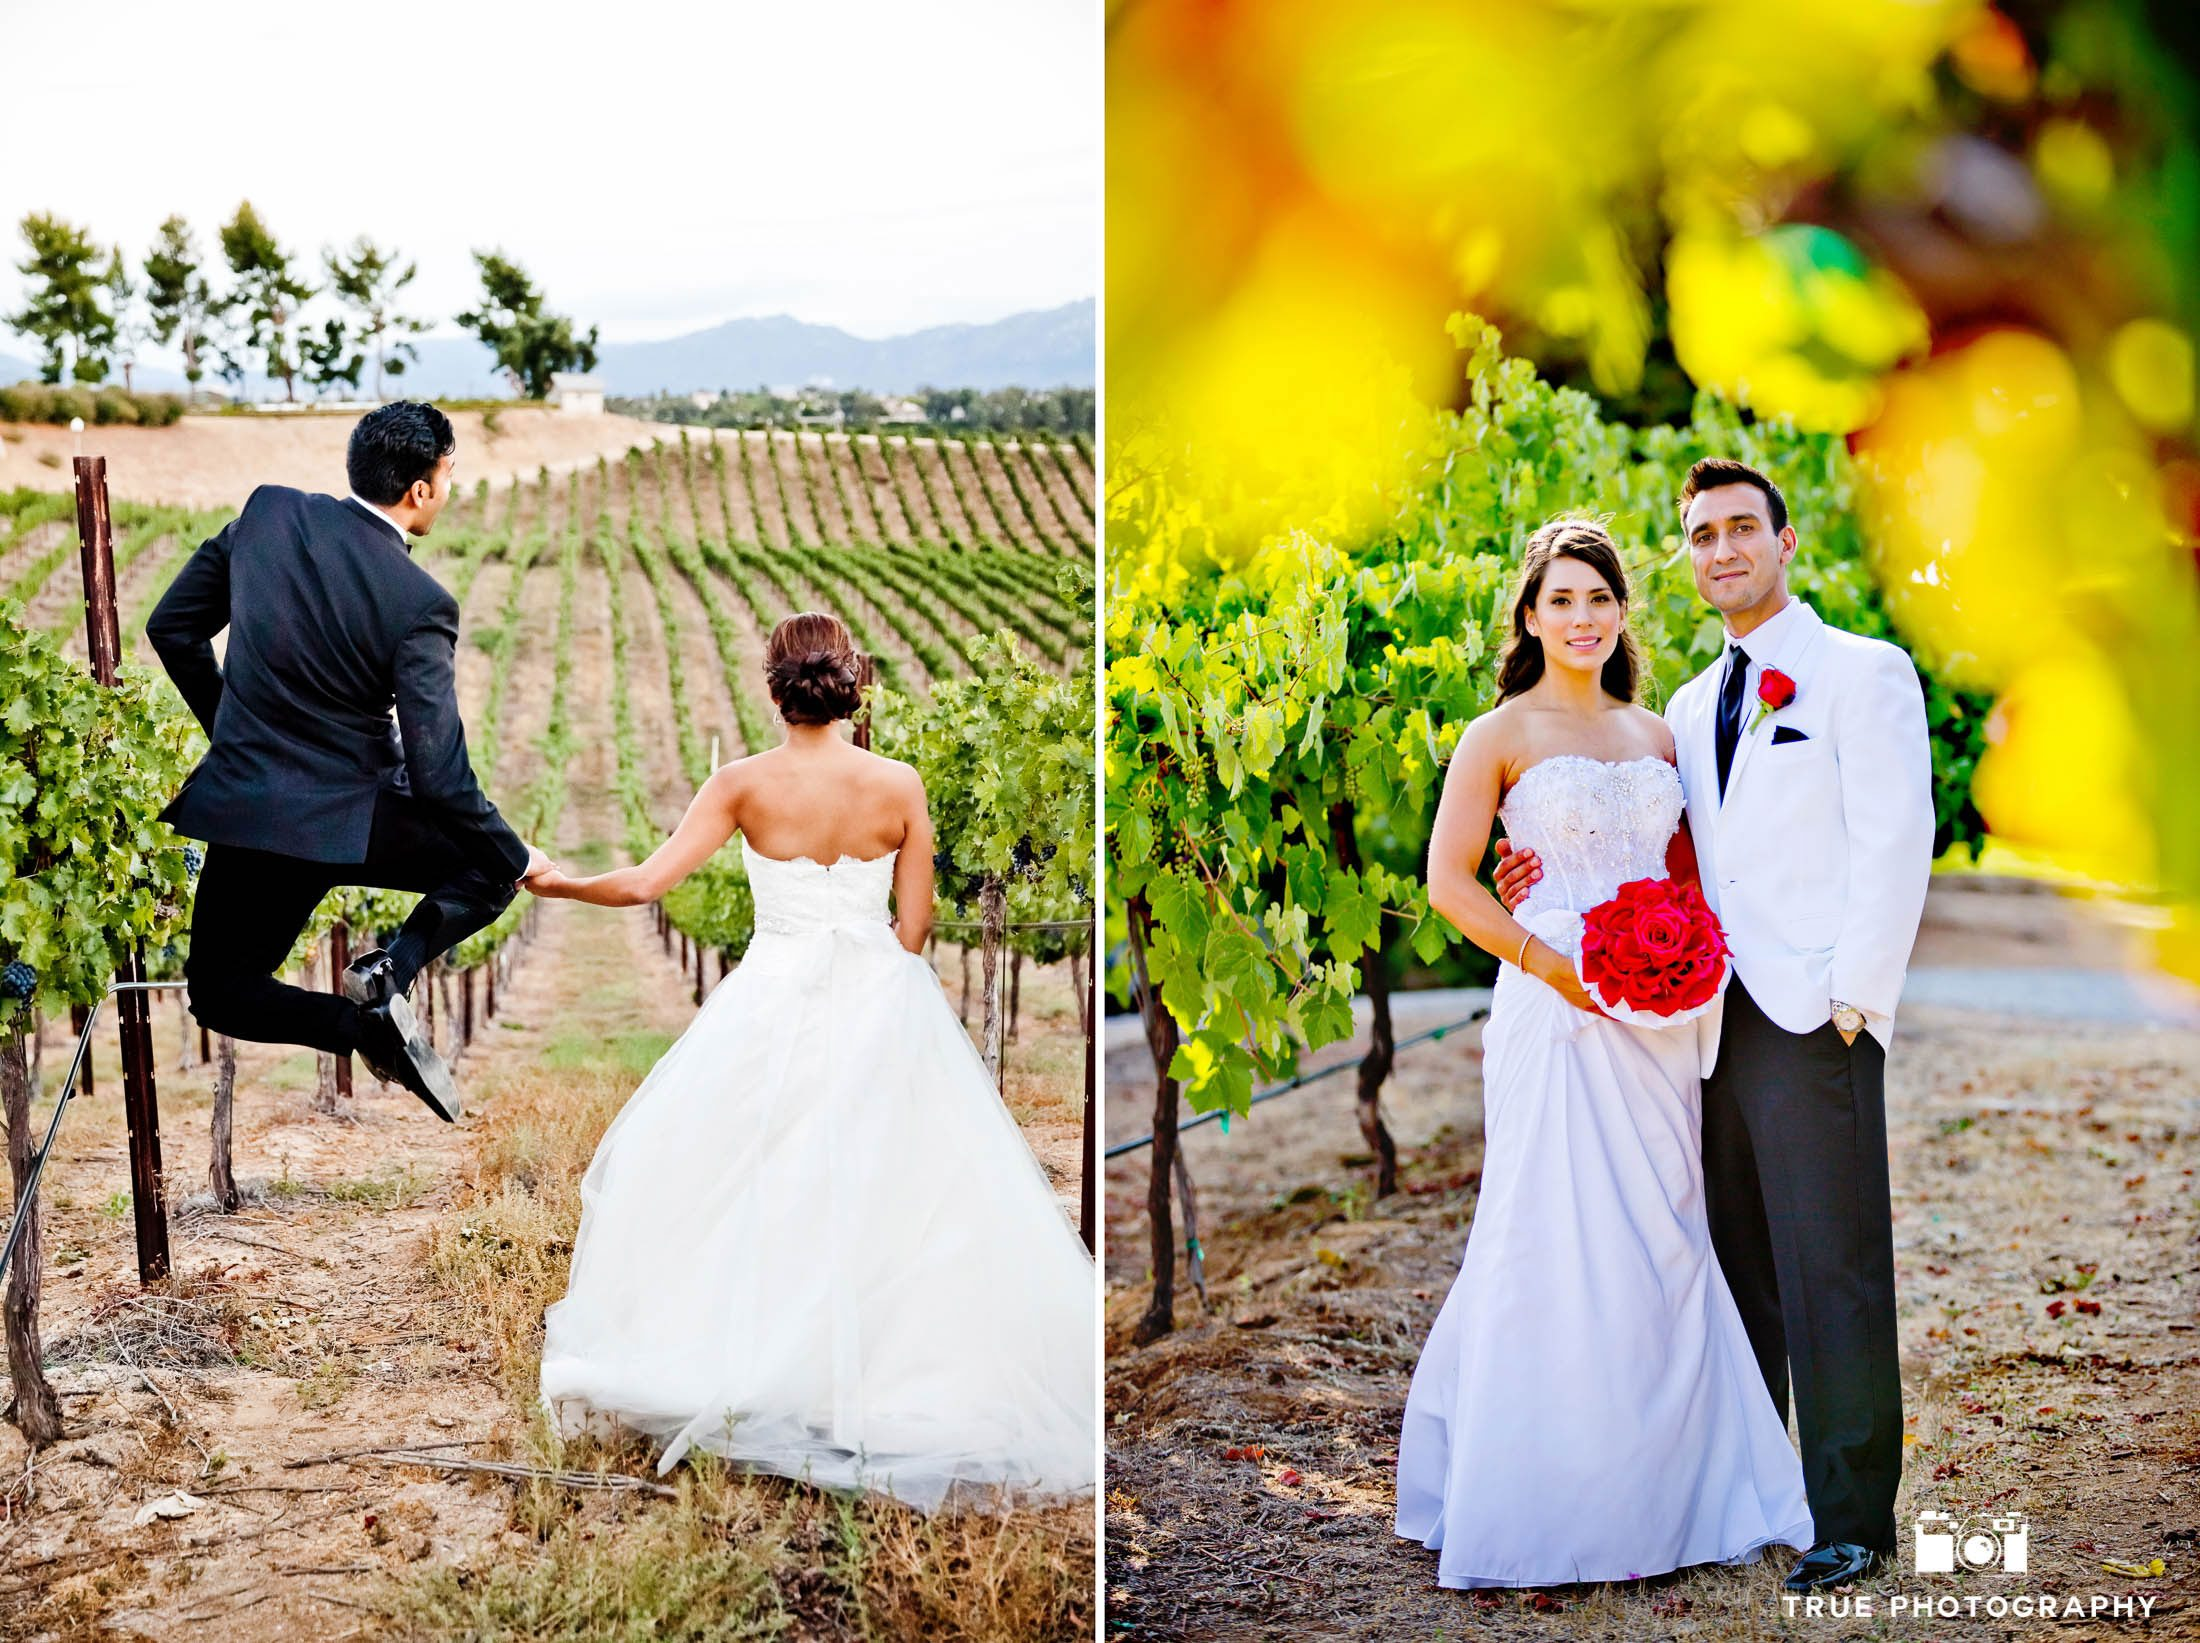 Couples celebrate and pose for photos after vineyard ceremony